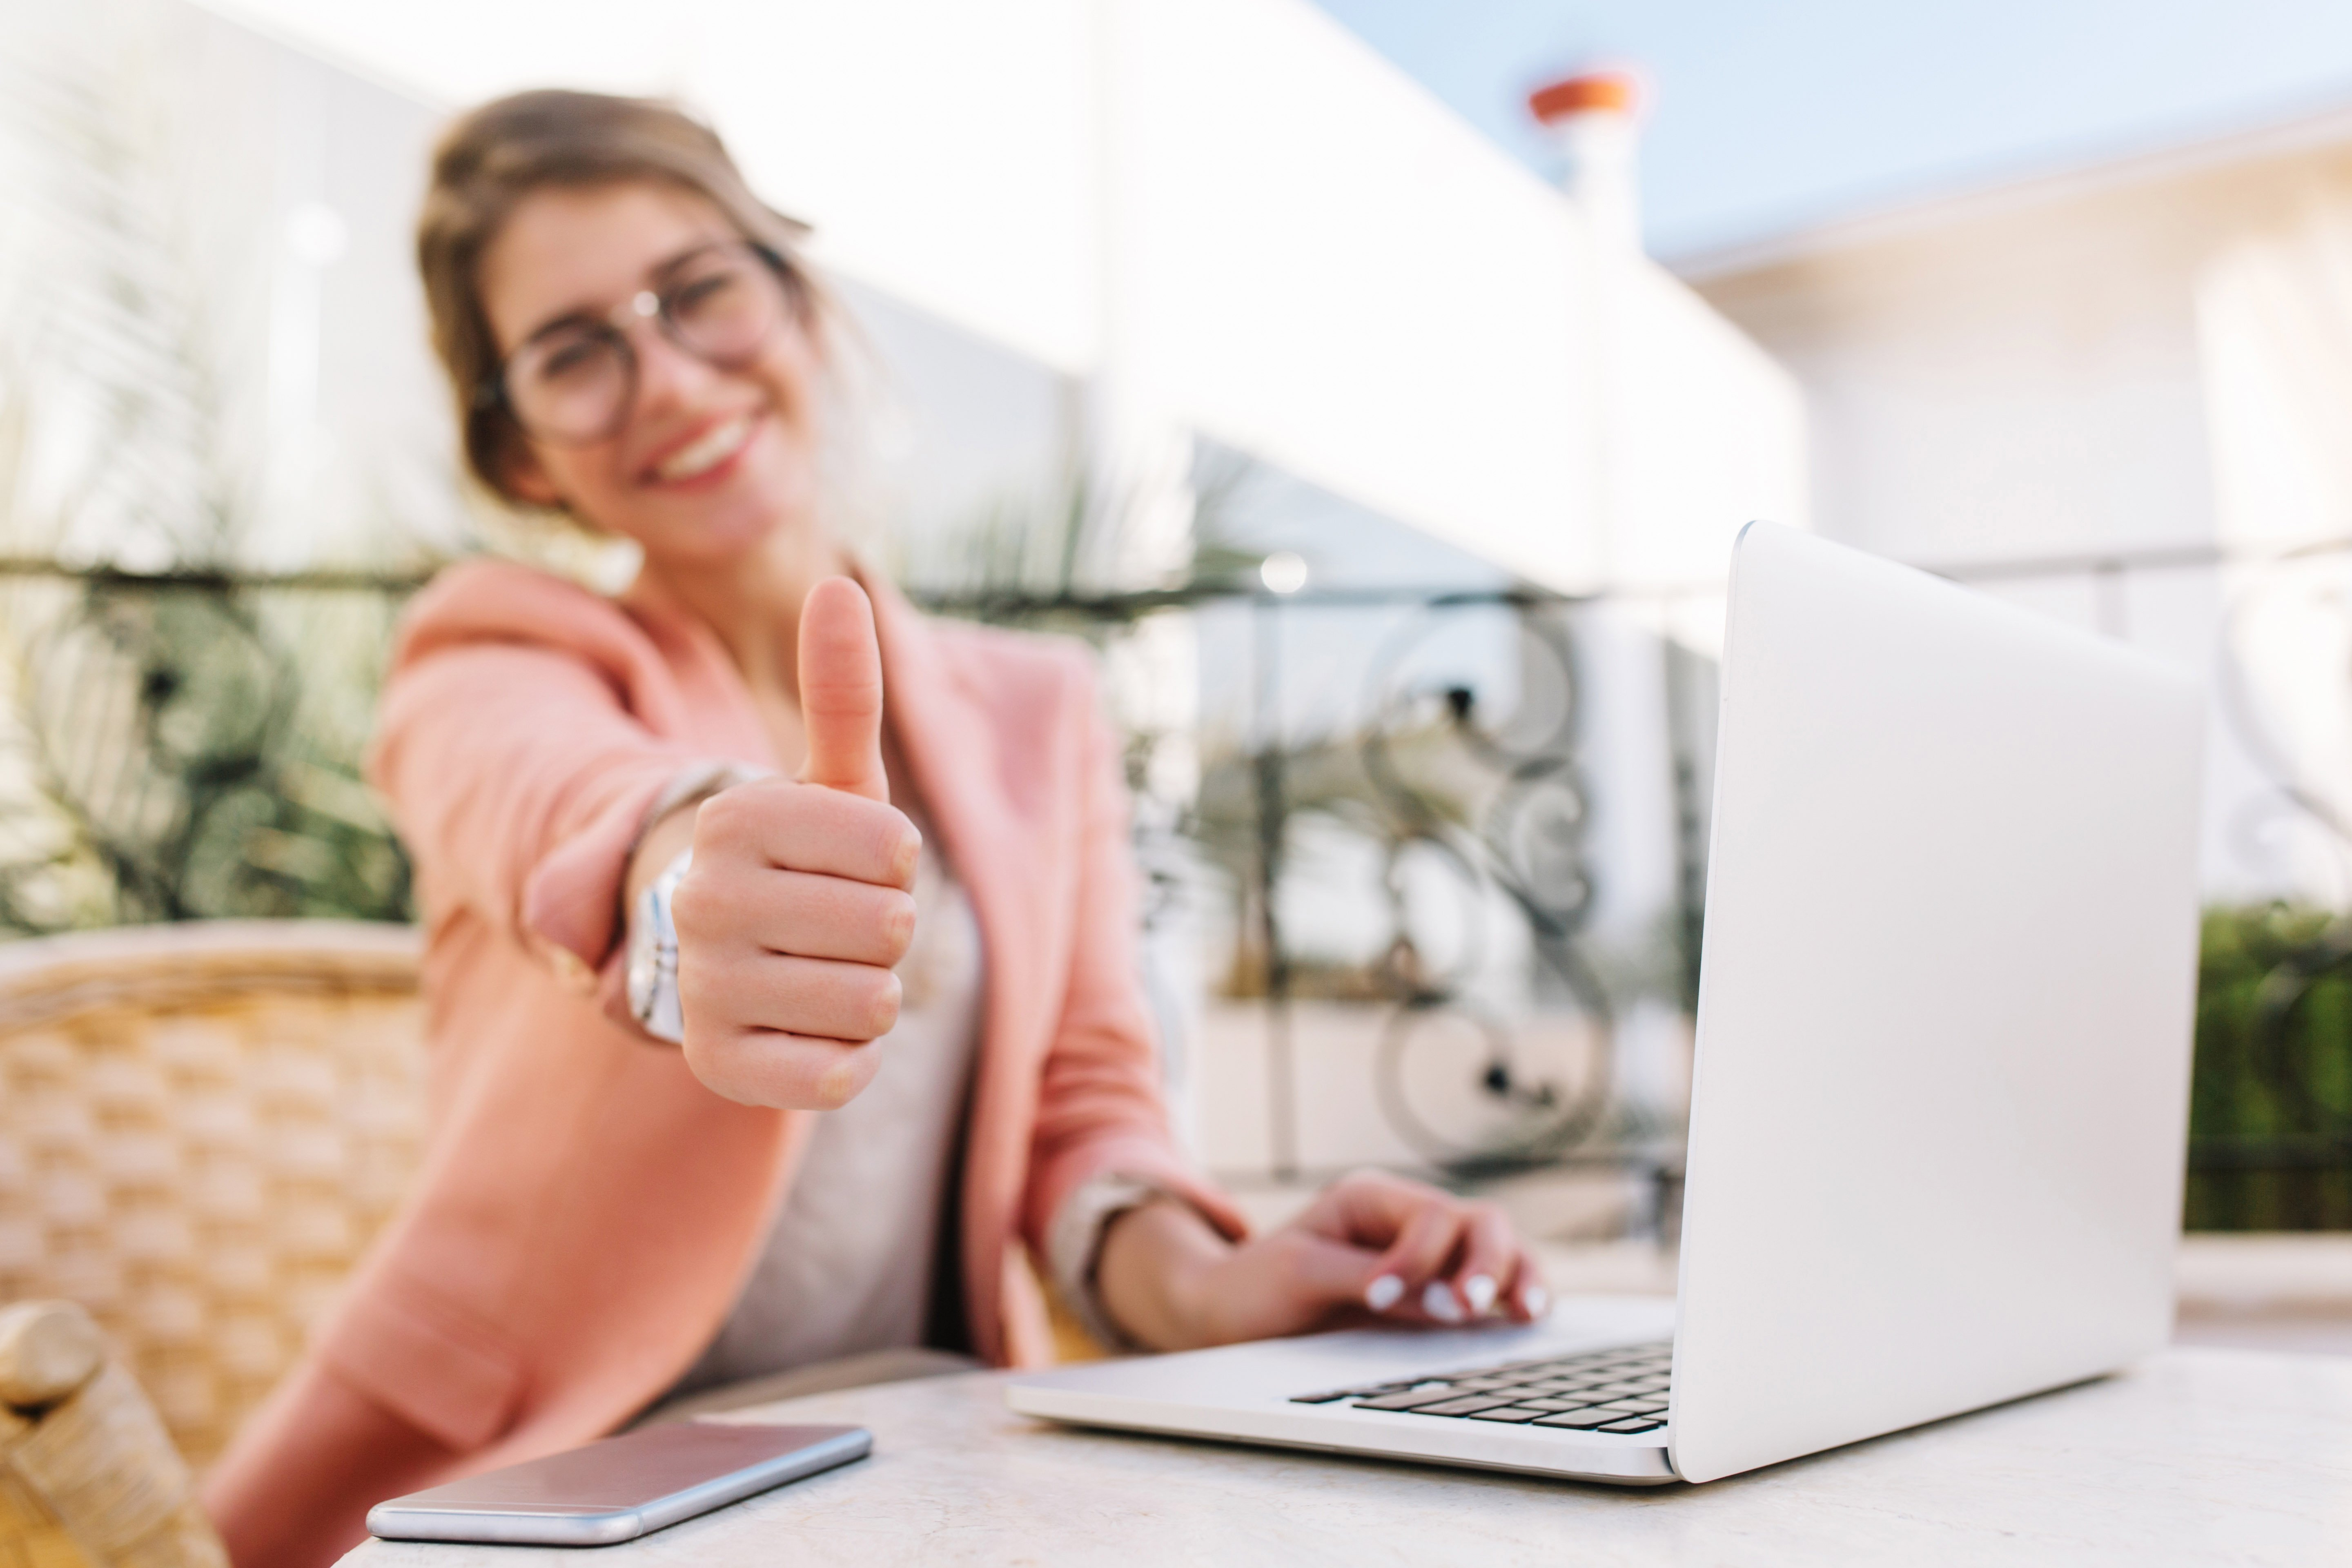 woman sitting in front of her computer giving a thumbs up